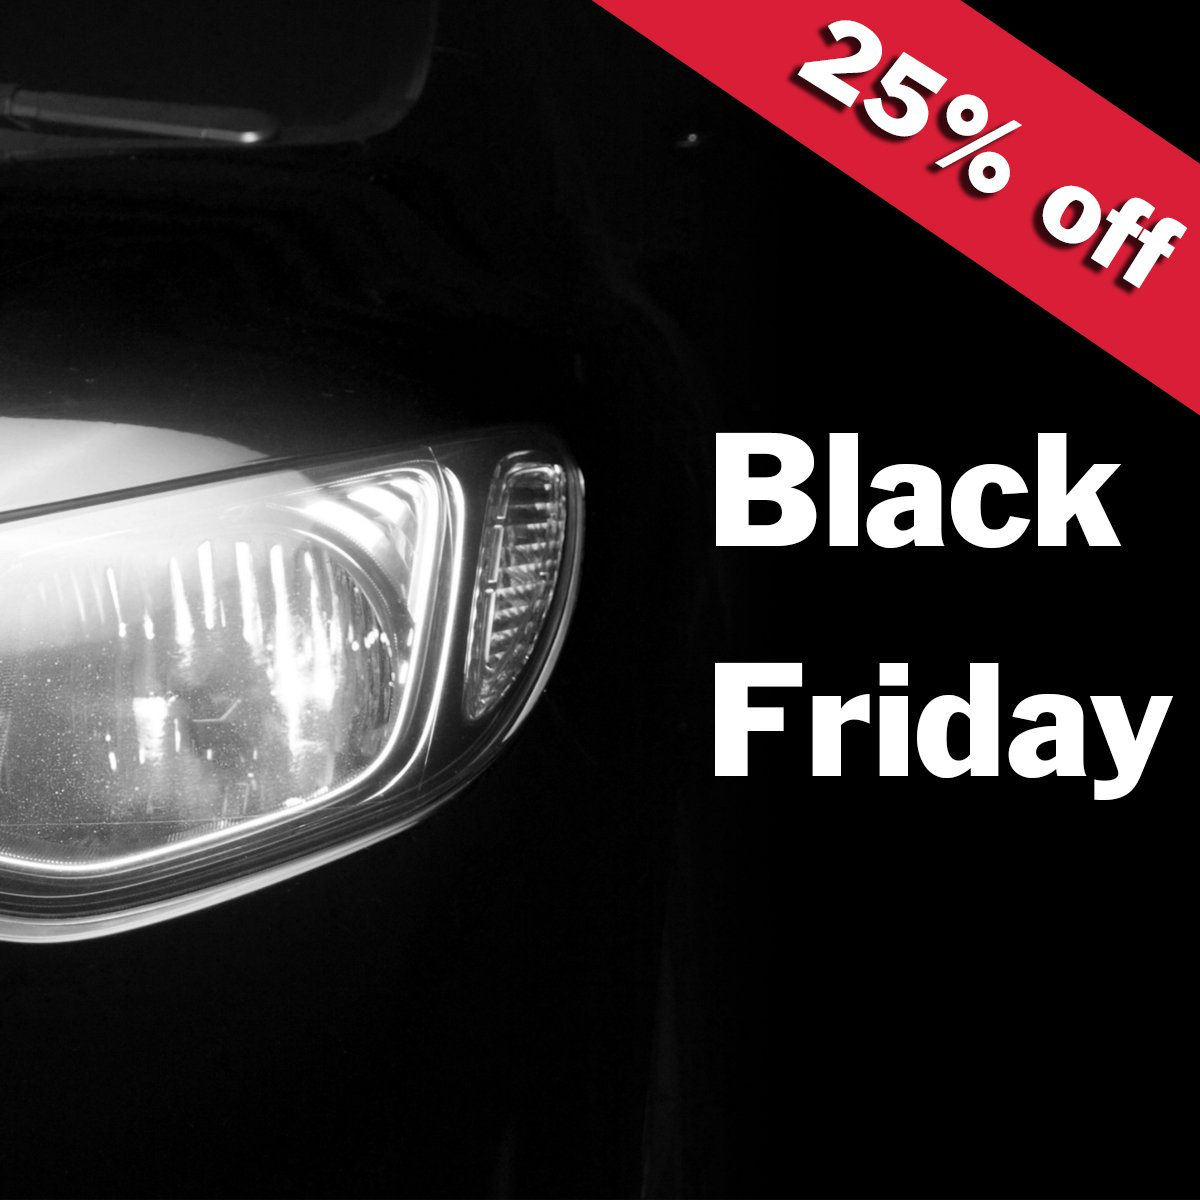 BlackFriday save 25% on airport car parking*, use code BLKFRI. Book by Monday: *T&Cs apply.